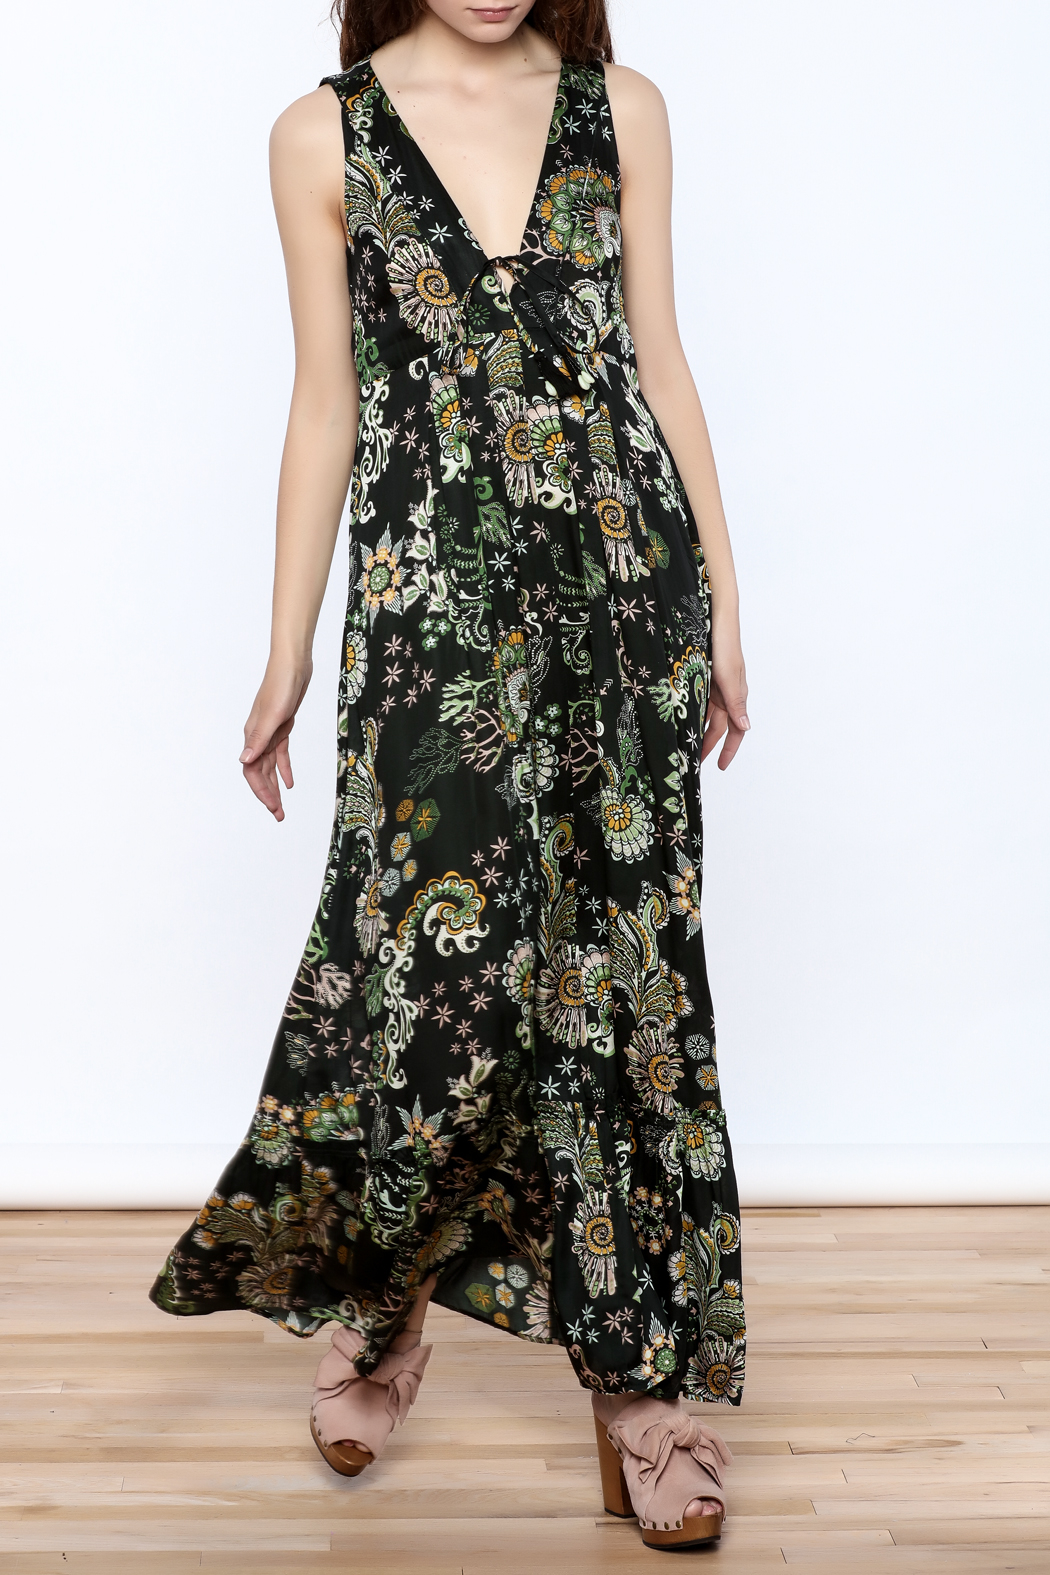 e8c578530 Odd Molly Floral Paisley Maxi Dress from Cleveland by grey colt ...